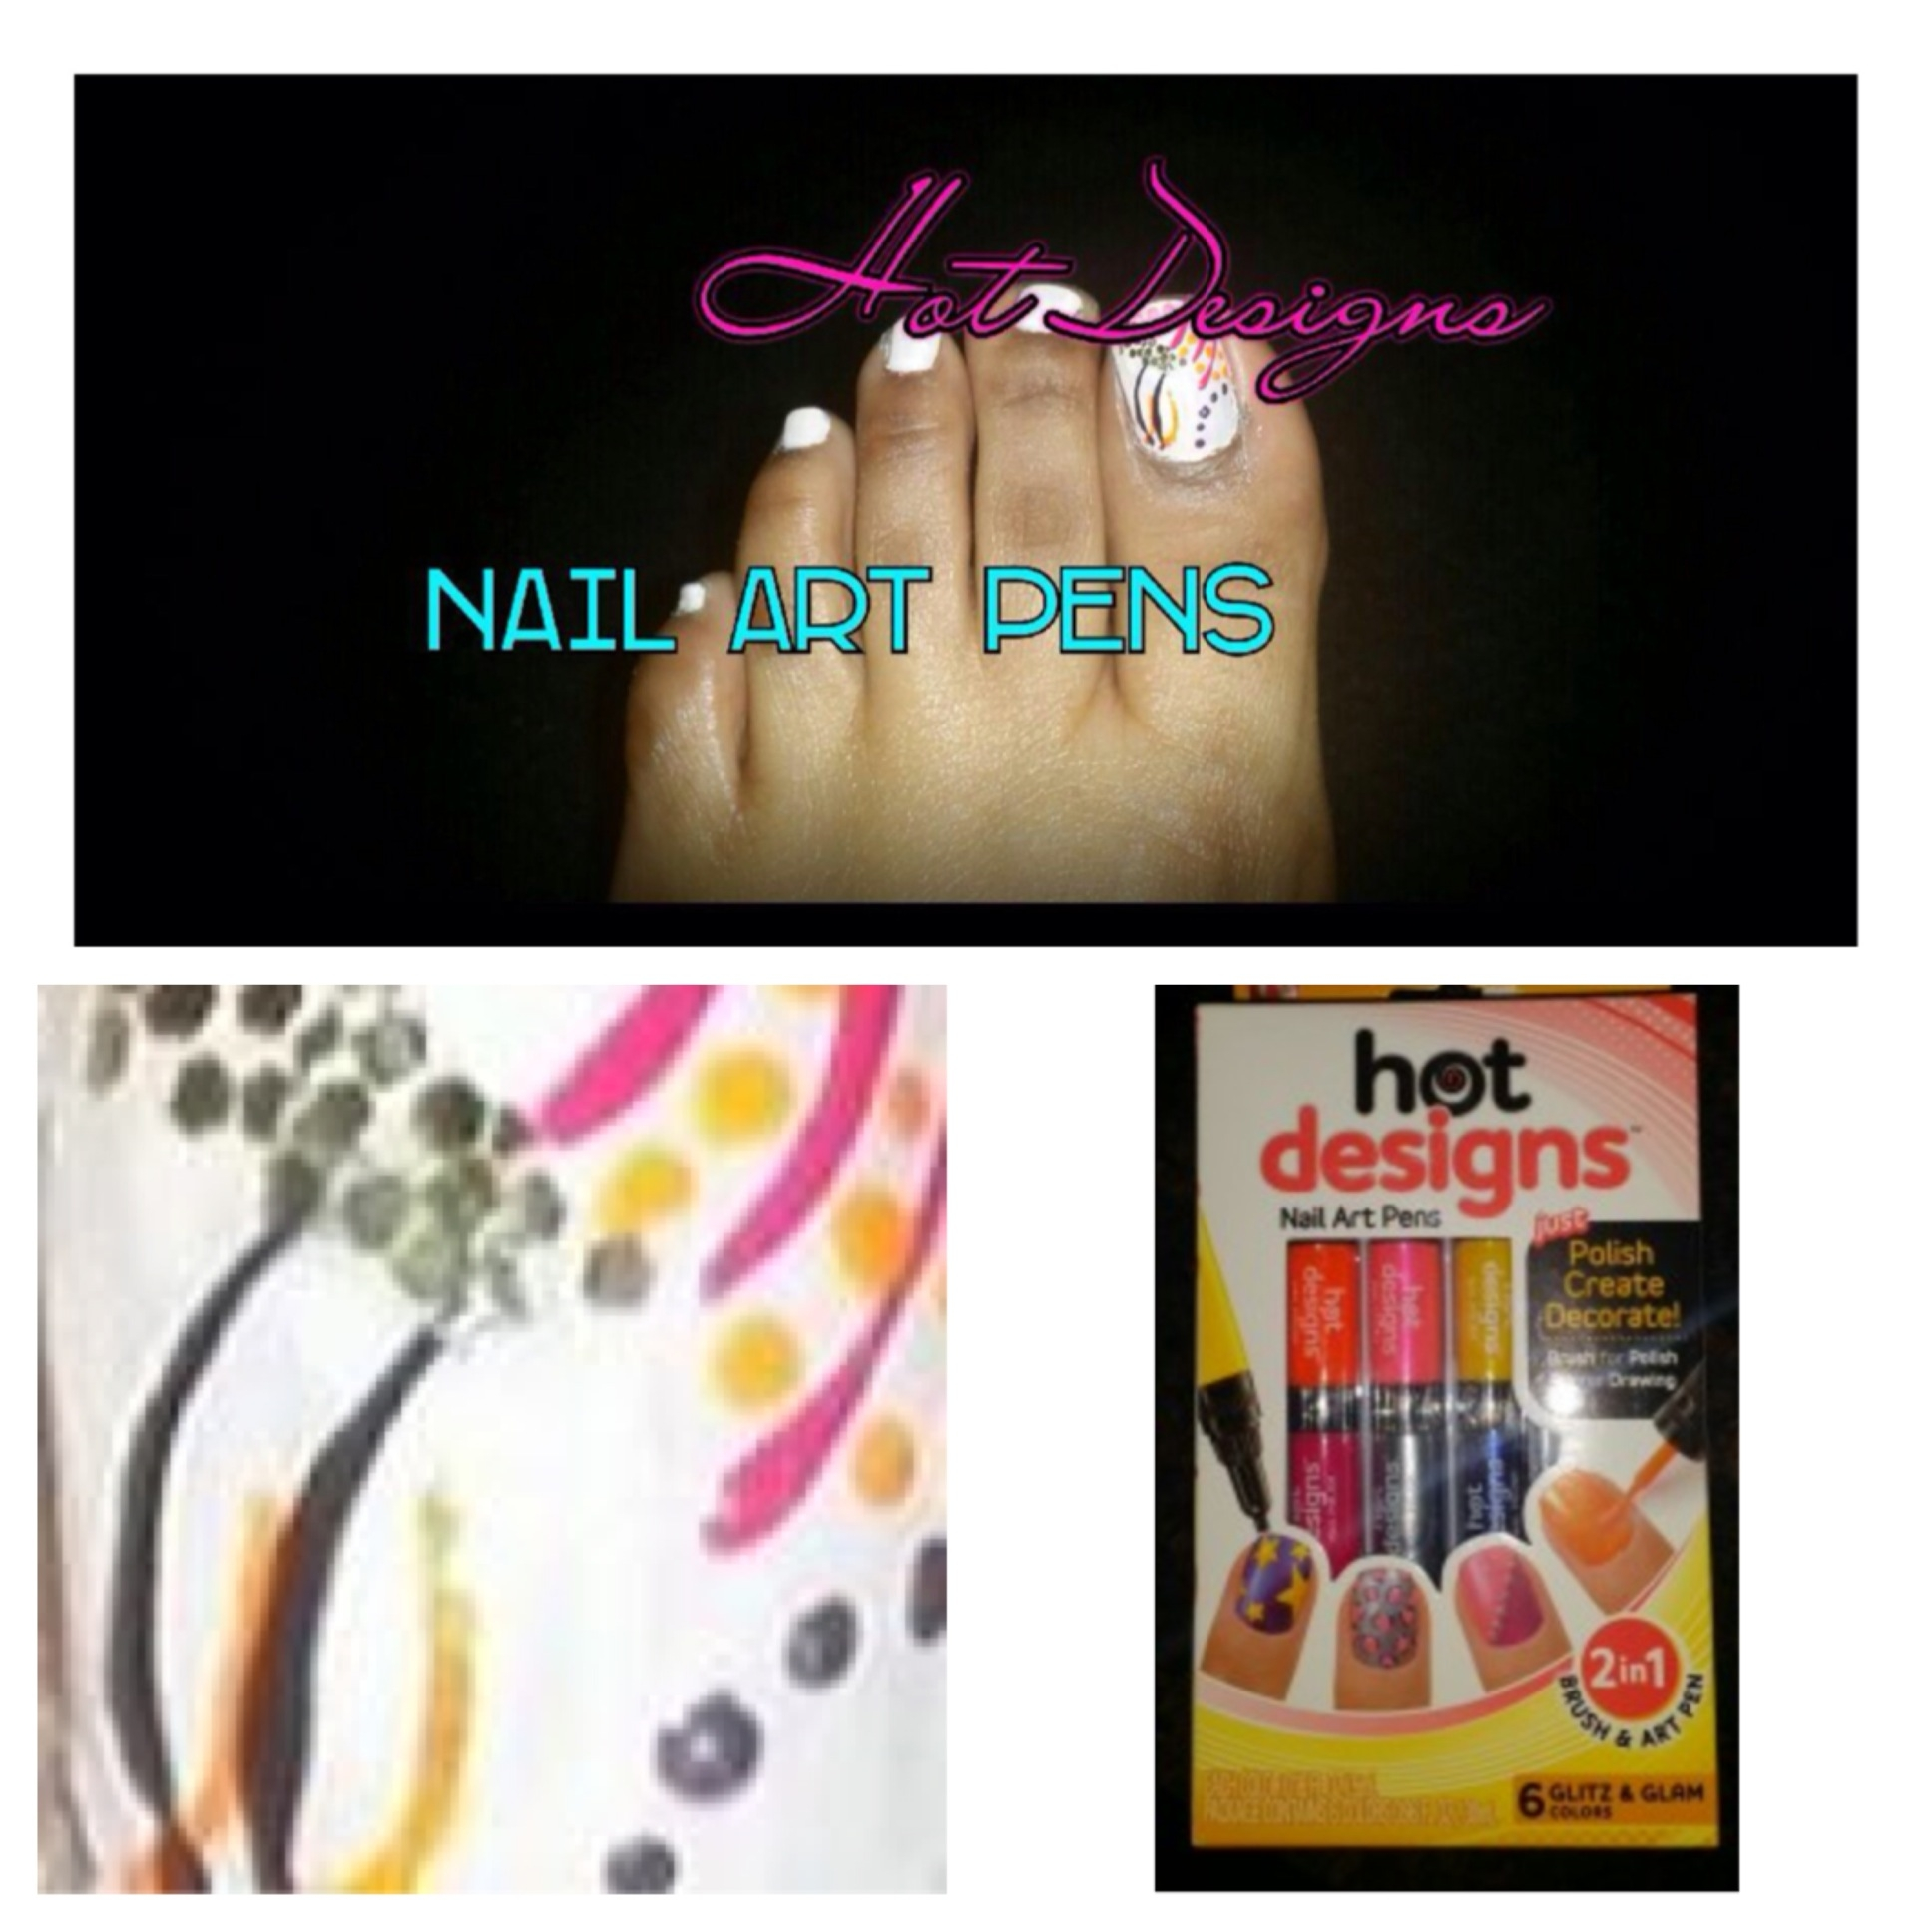 Review hot designs nail art pens thegreenevademecum hot designs nail art pens prinsesfo Image collections